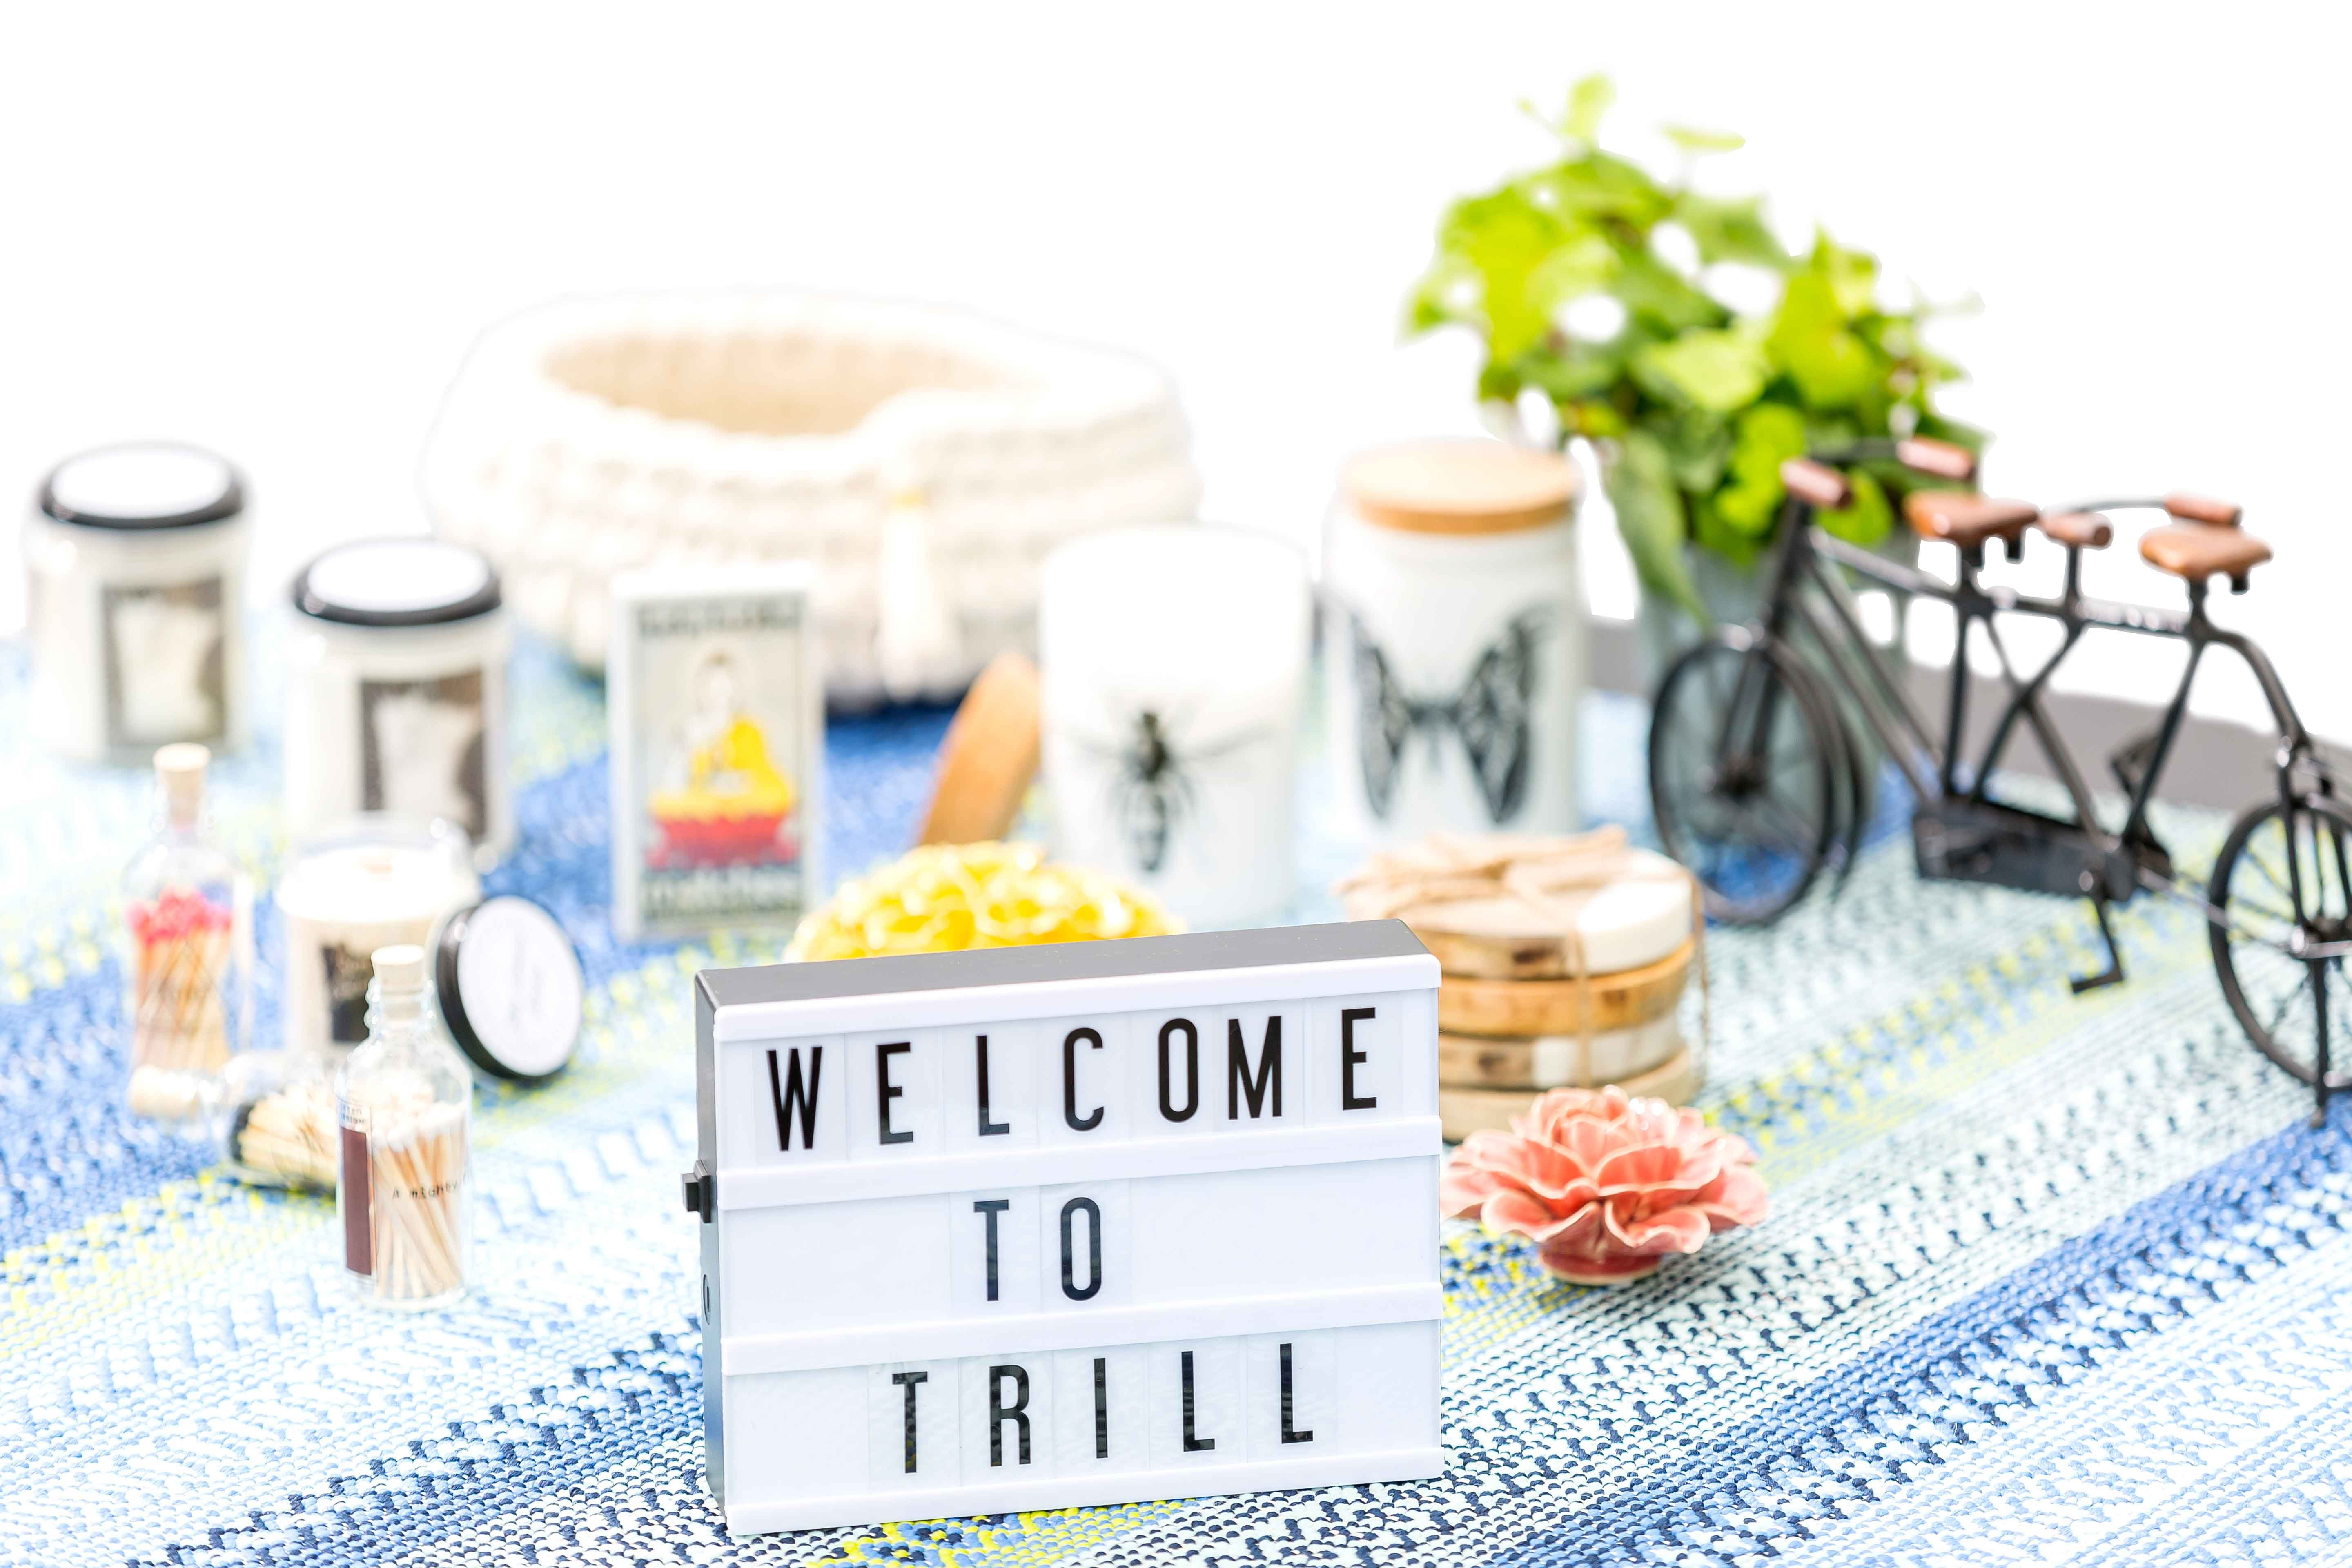 Lifestyle Shop Trill Opens At Sunnyside Gardens Mplsstpaul Magazine